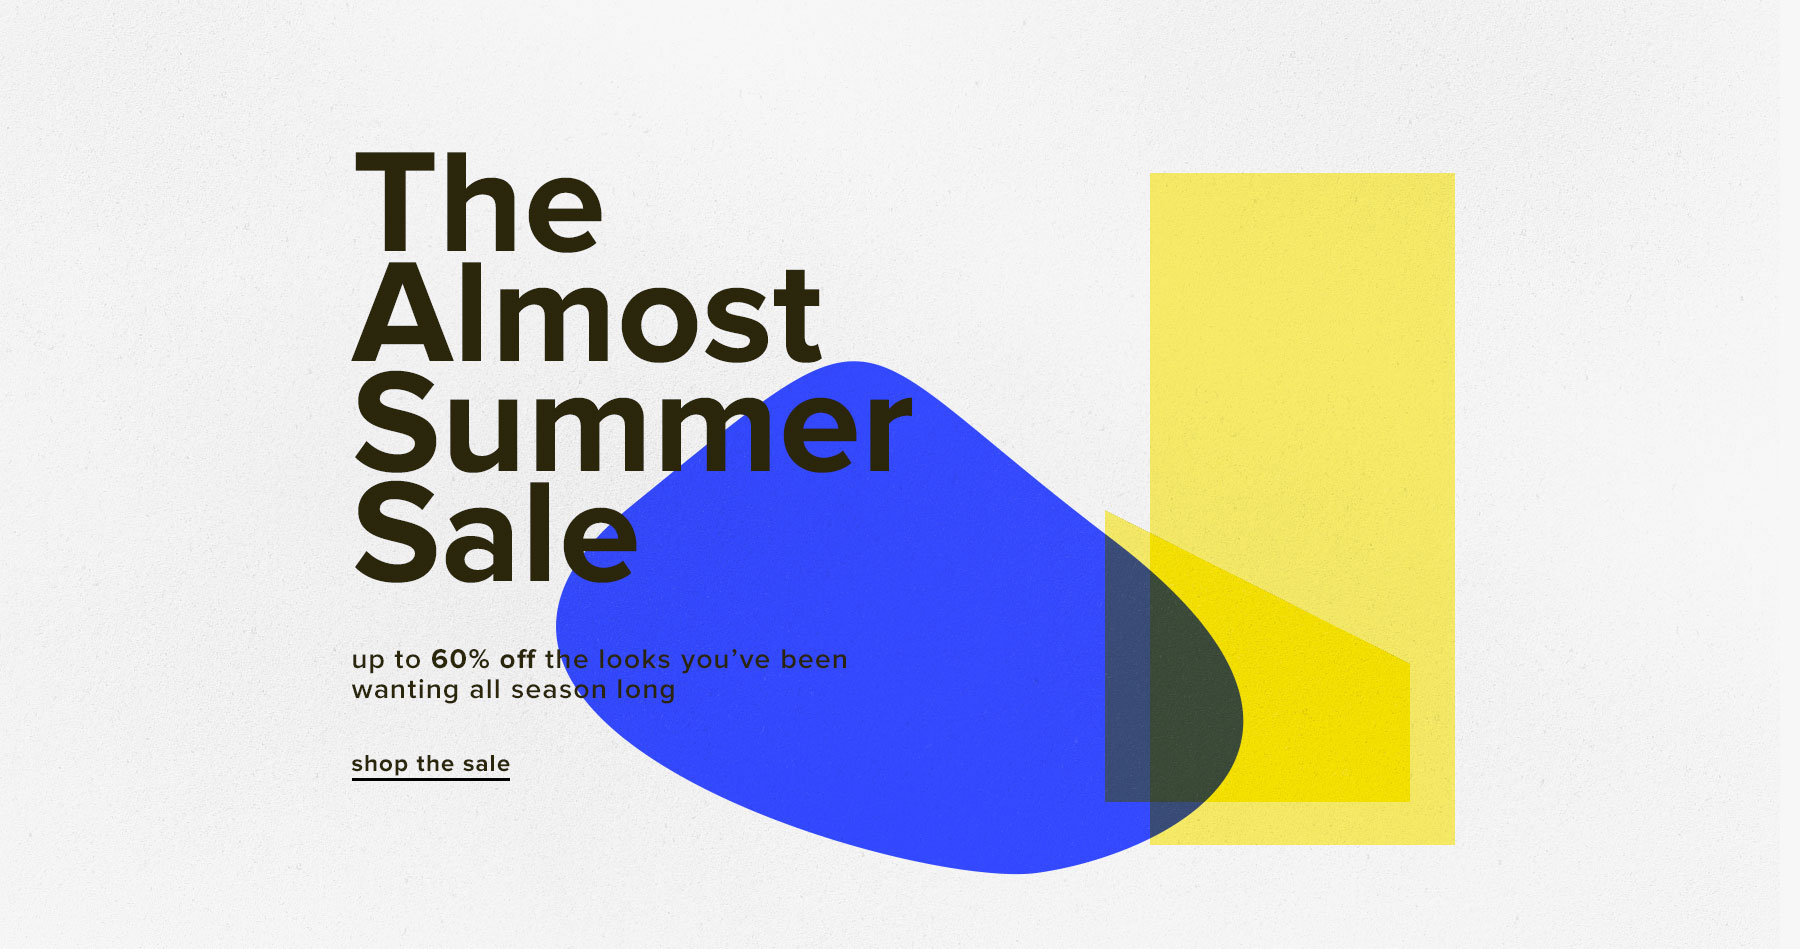 The Almost Summer Sale. Up to 60% off the looks you've been wanting all season long. Shop The Sale.